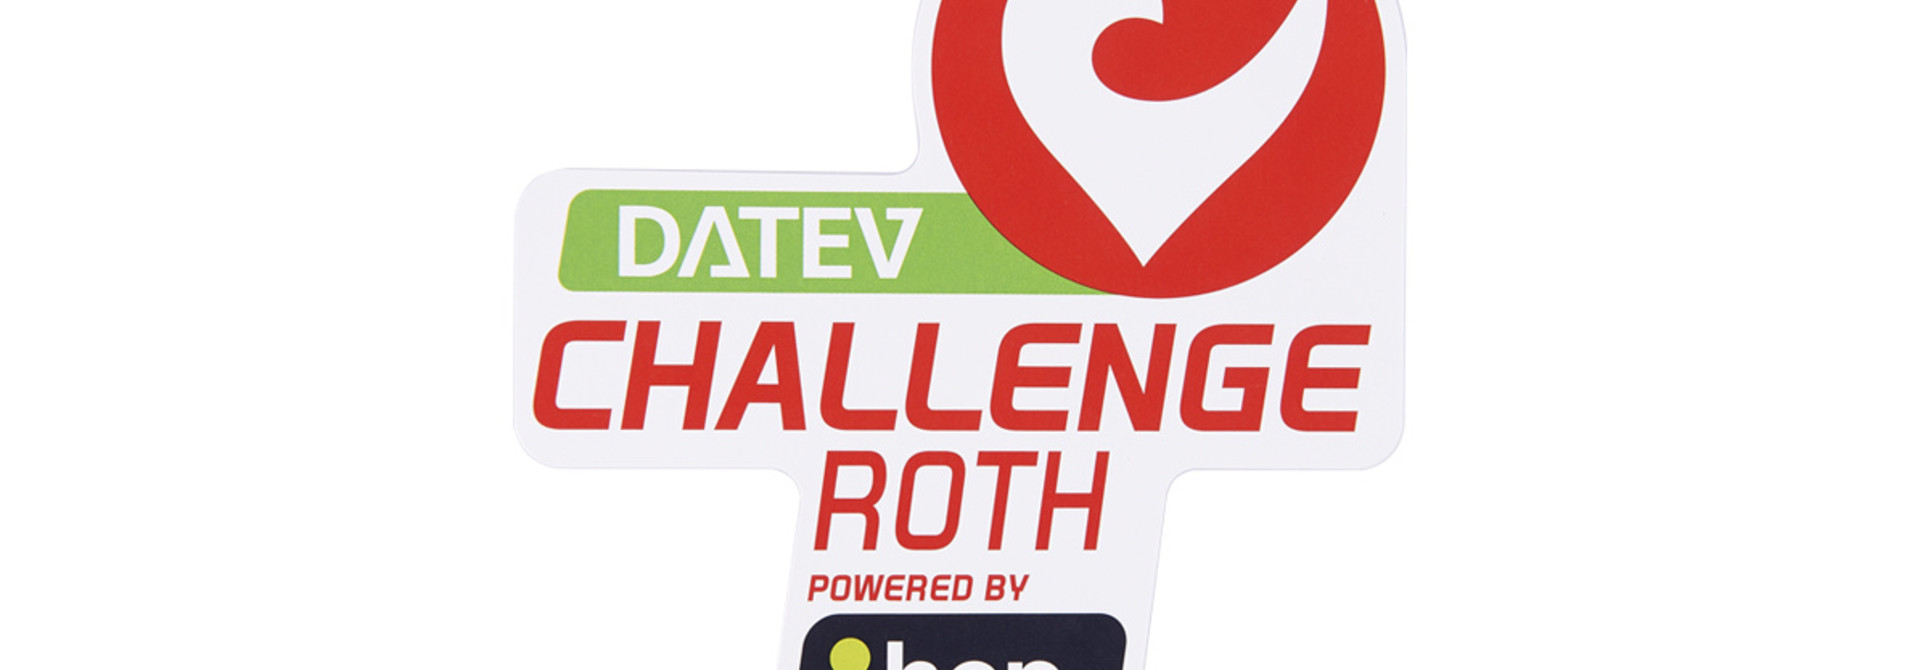 Sticker DATEV Challenge Roth powered by hep small